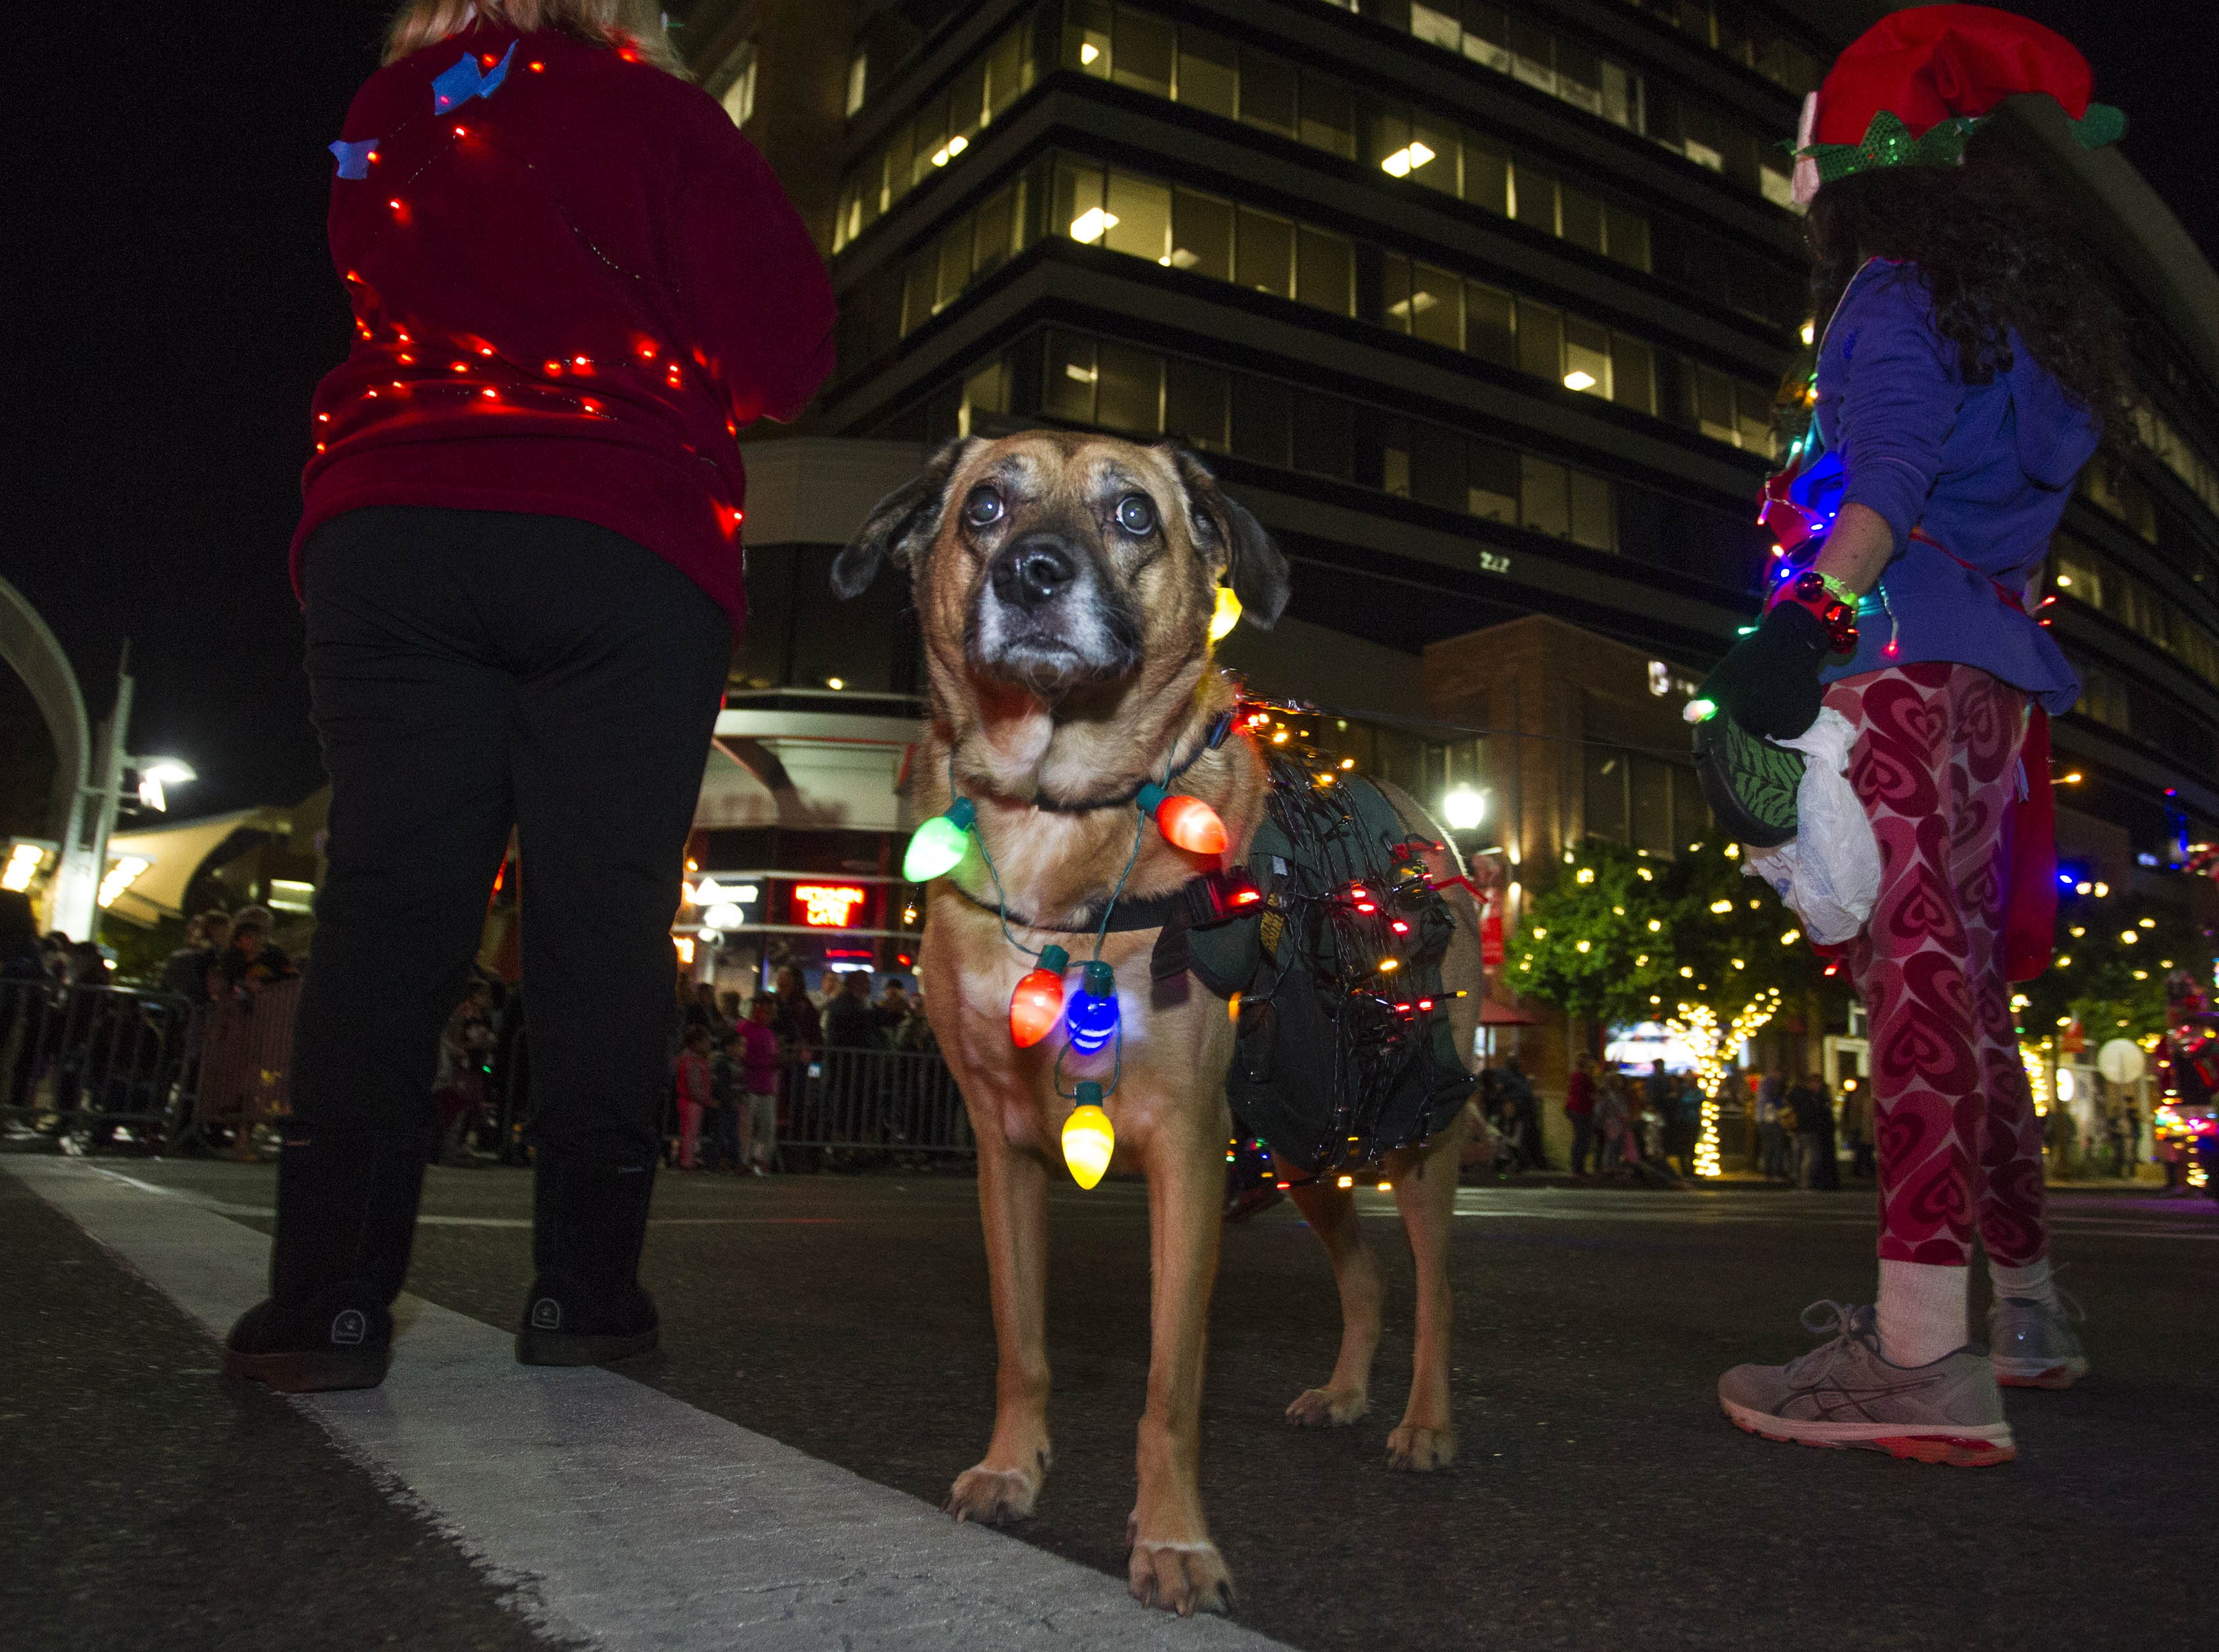 Chester waits to do his part in the 2018 Fantasy of Lights Parade on Mill Ave. in downtown Tempe Friday, Nov. 23, 2018.